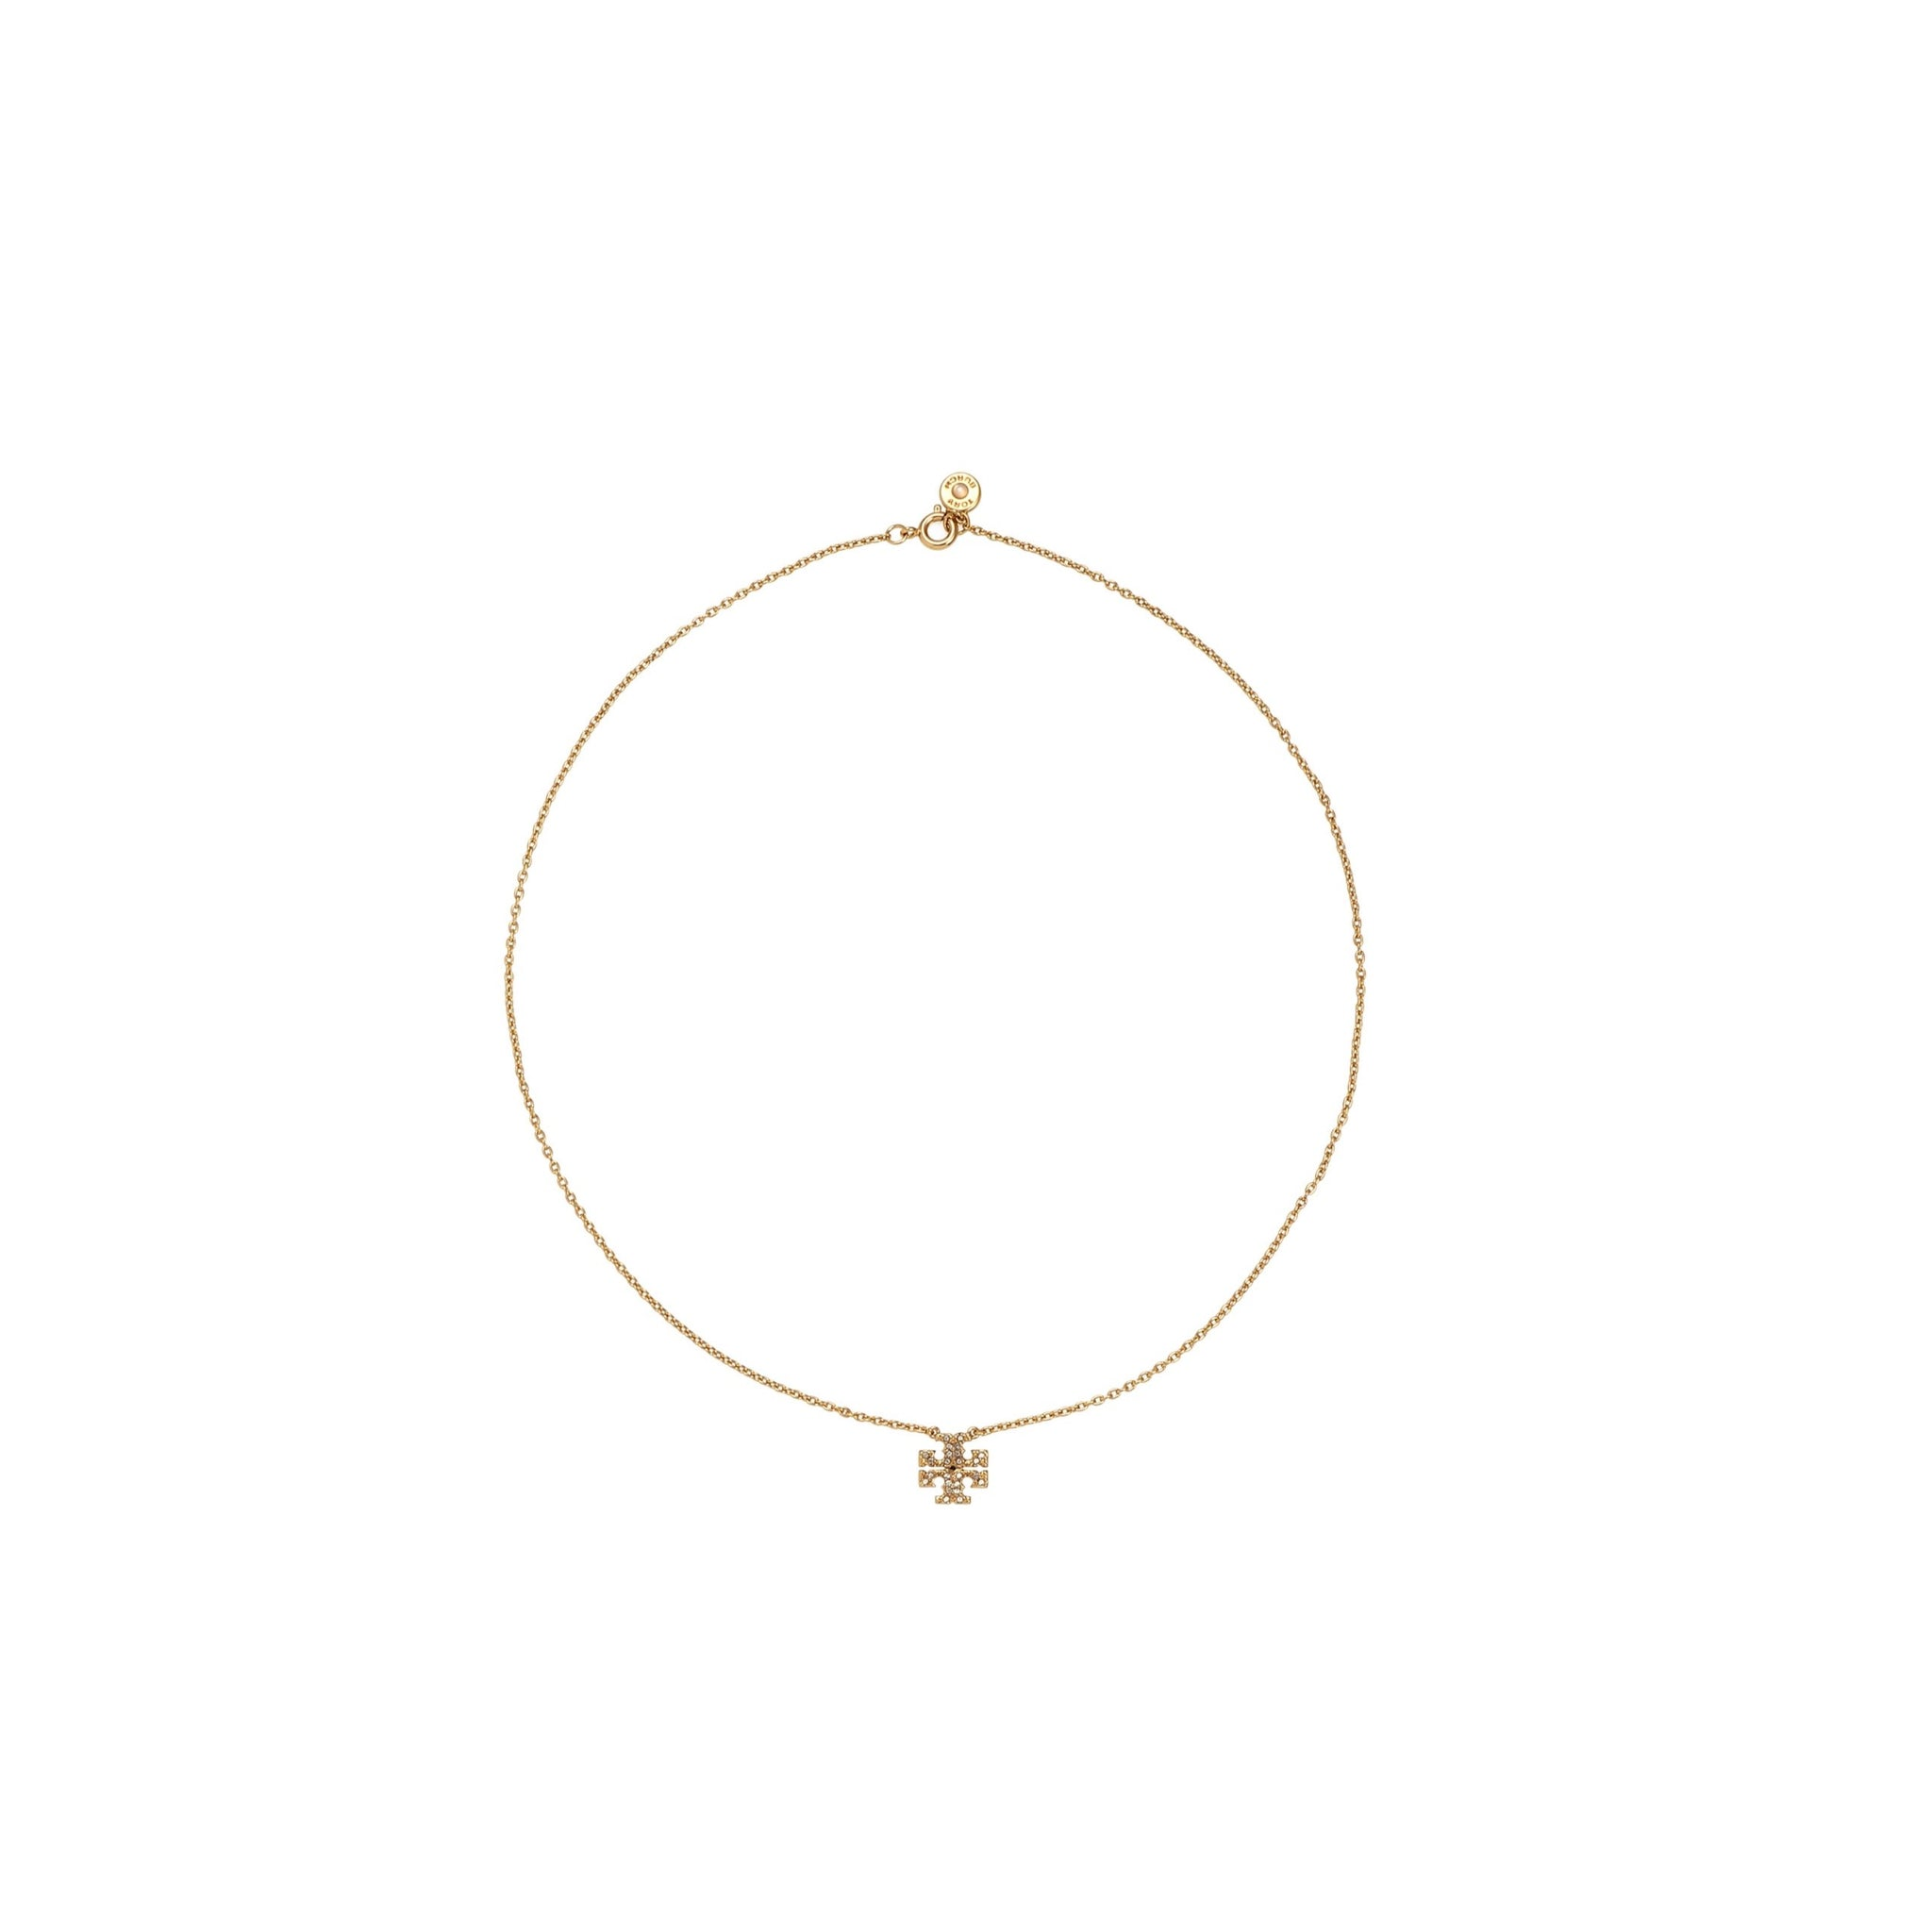 KIRA PAVE DELICATE NECKLACE - GOLD